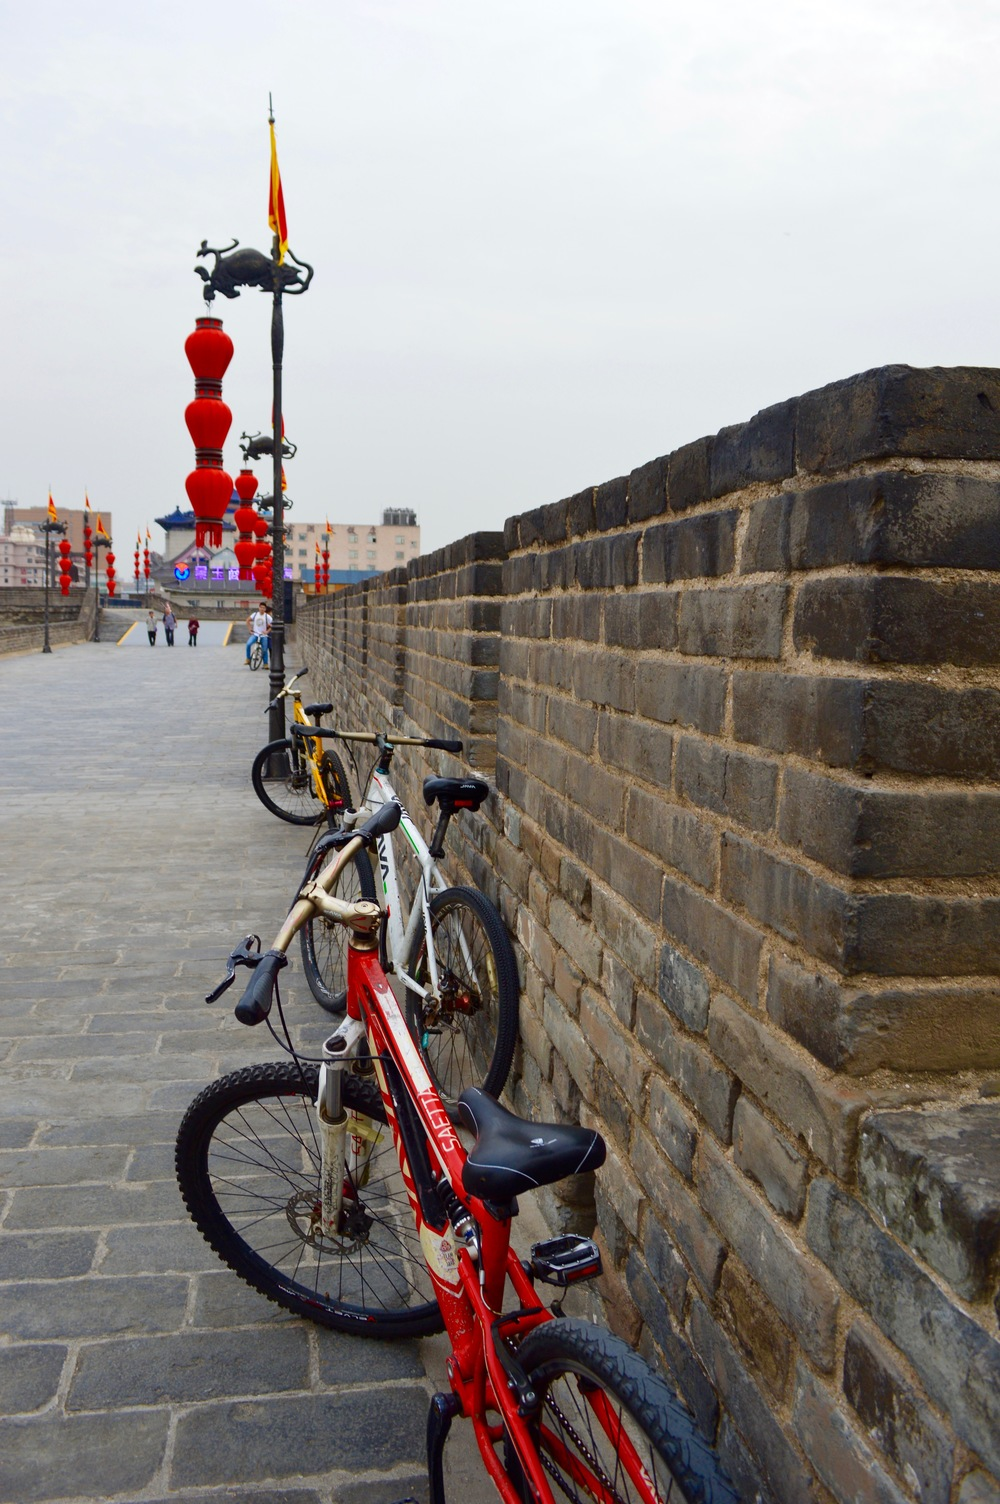 Biking on the old city wall, Xian.